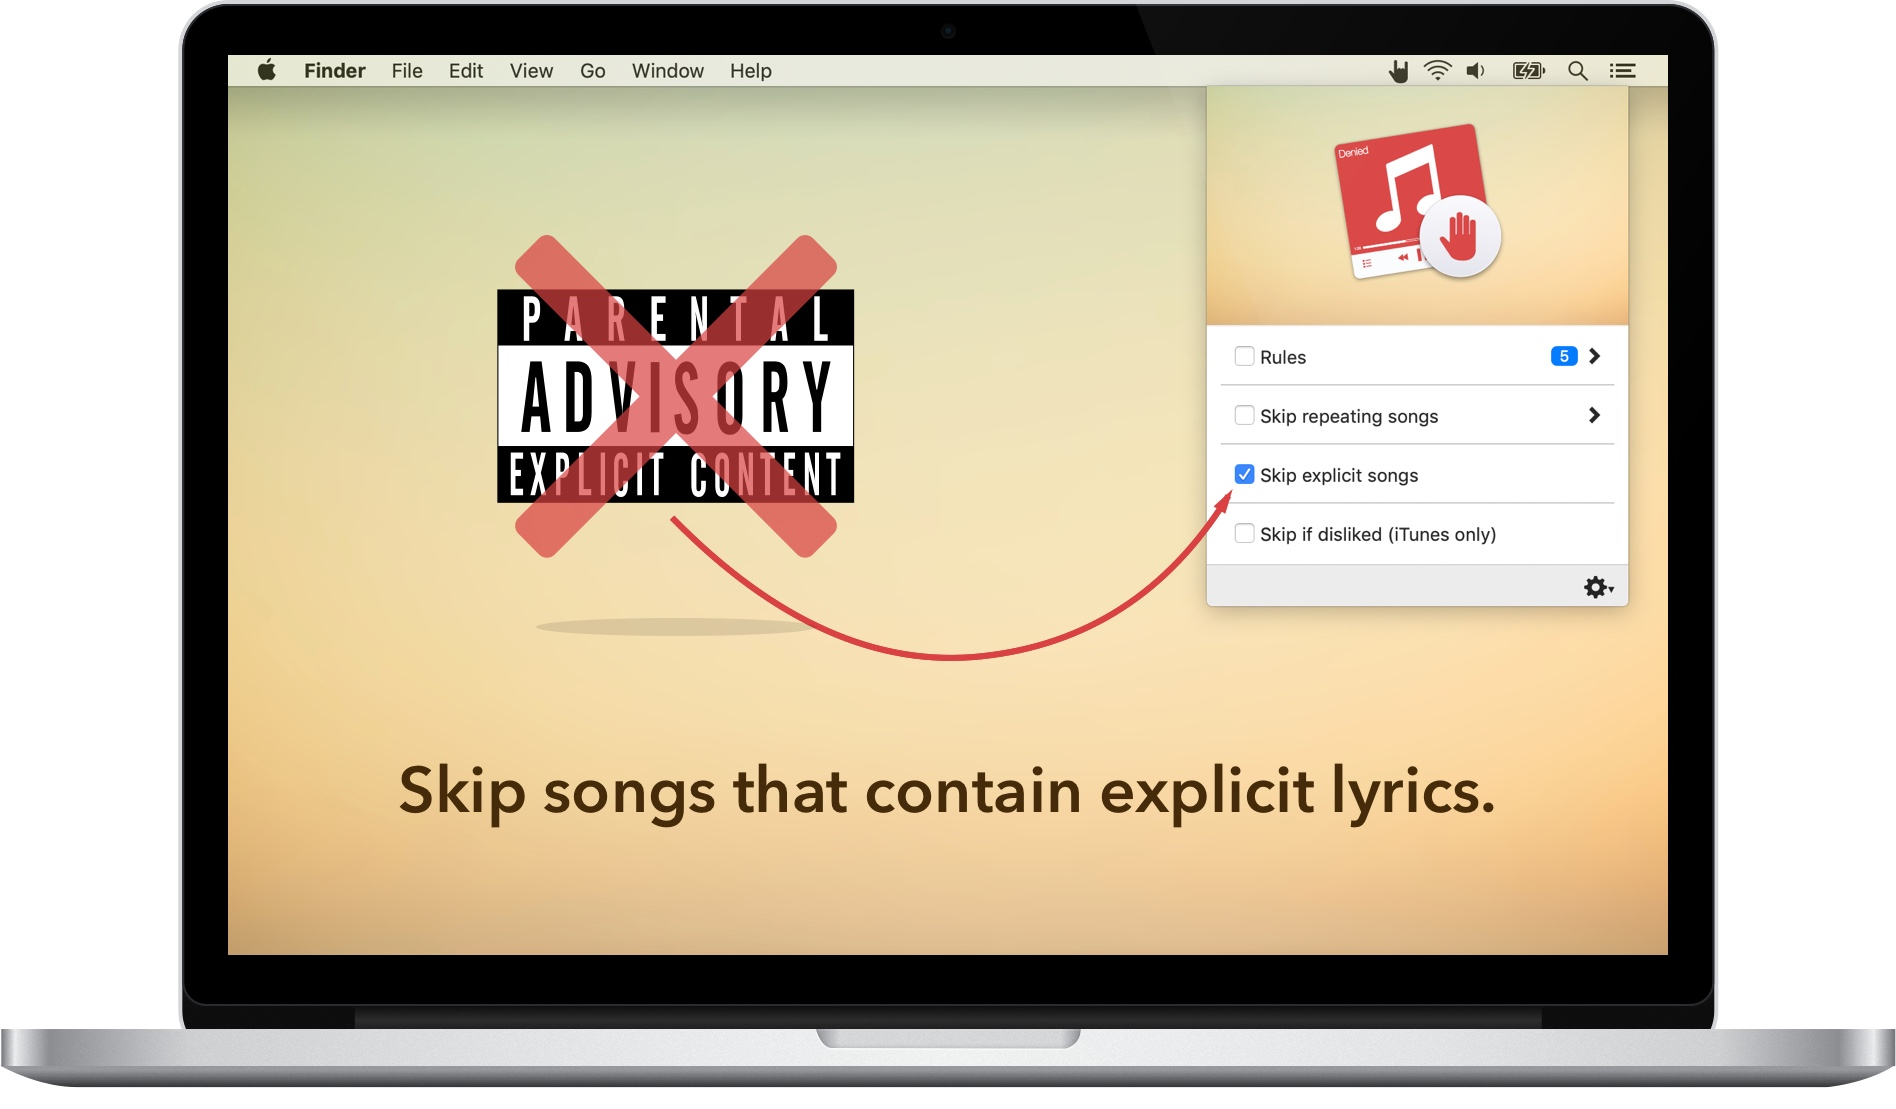 A MacBook running Denied showing that it can skip explicit songs